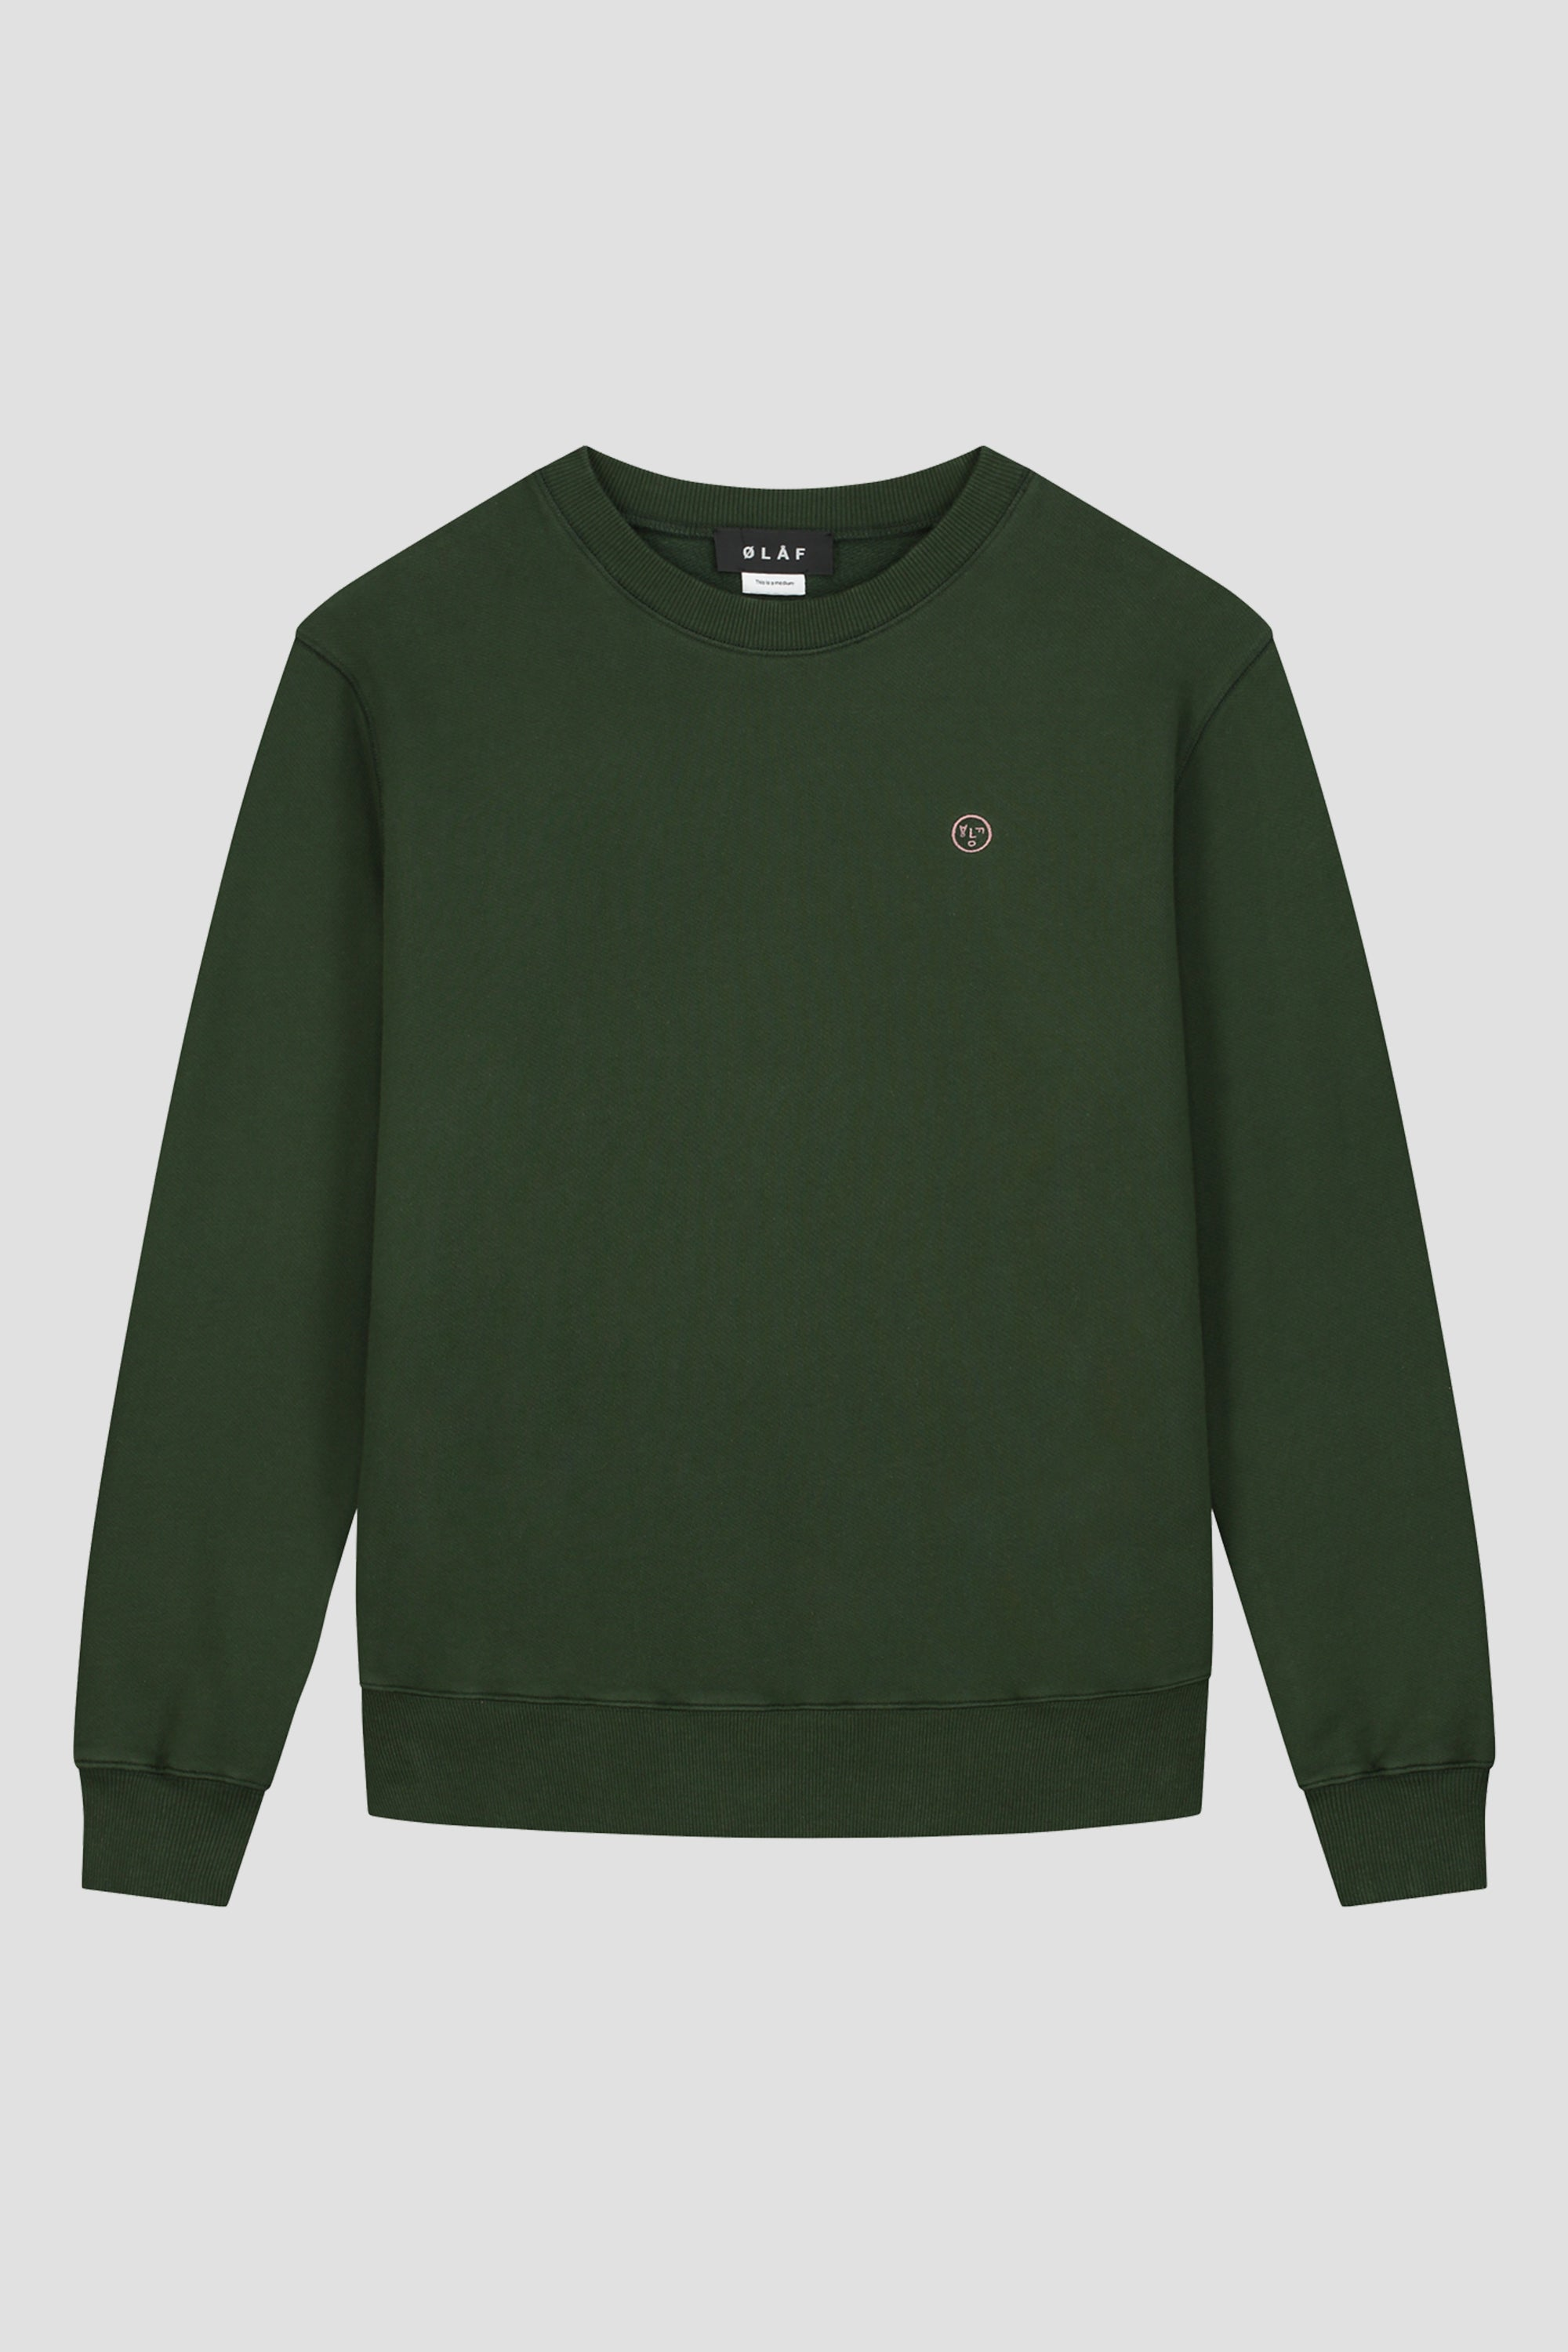 ØLÅF Face Crewneck - Dark Forest